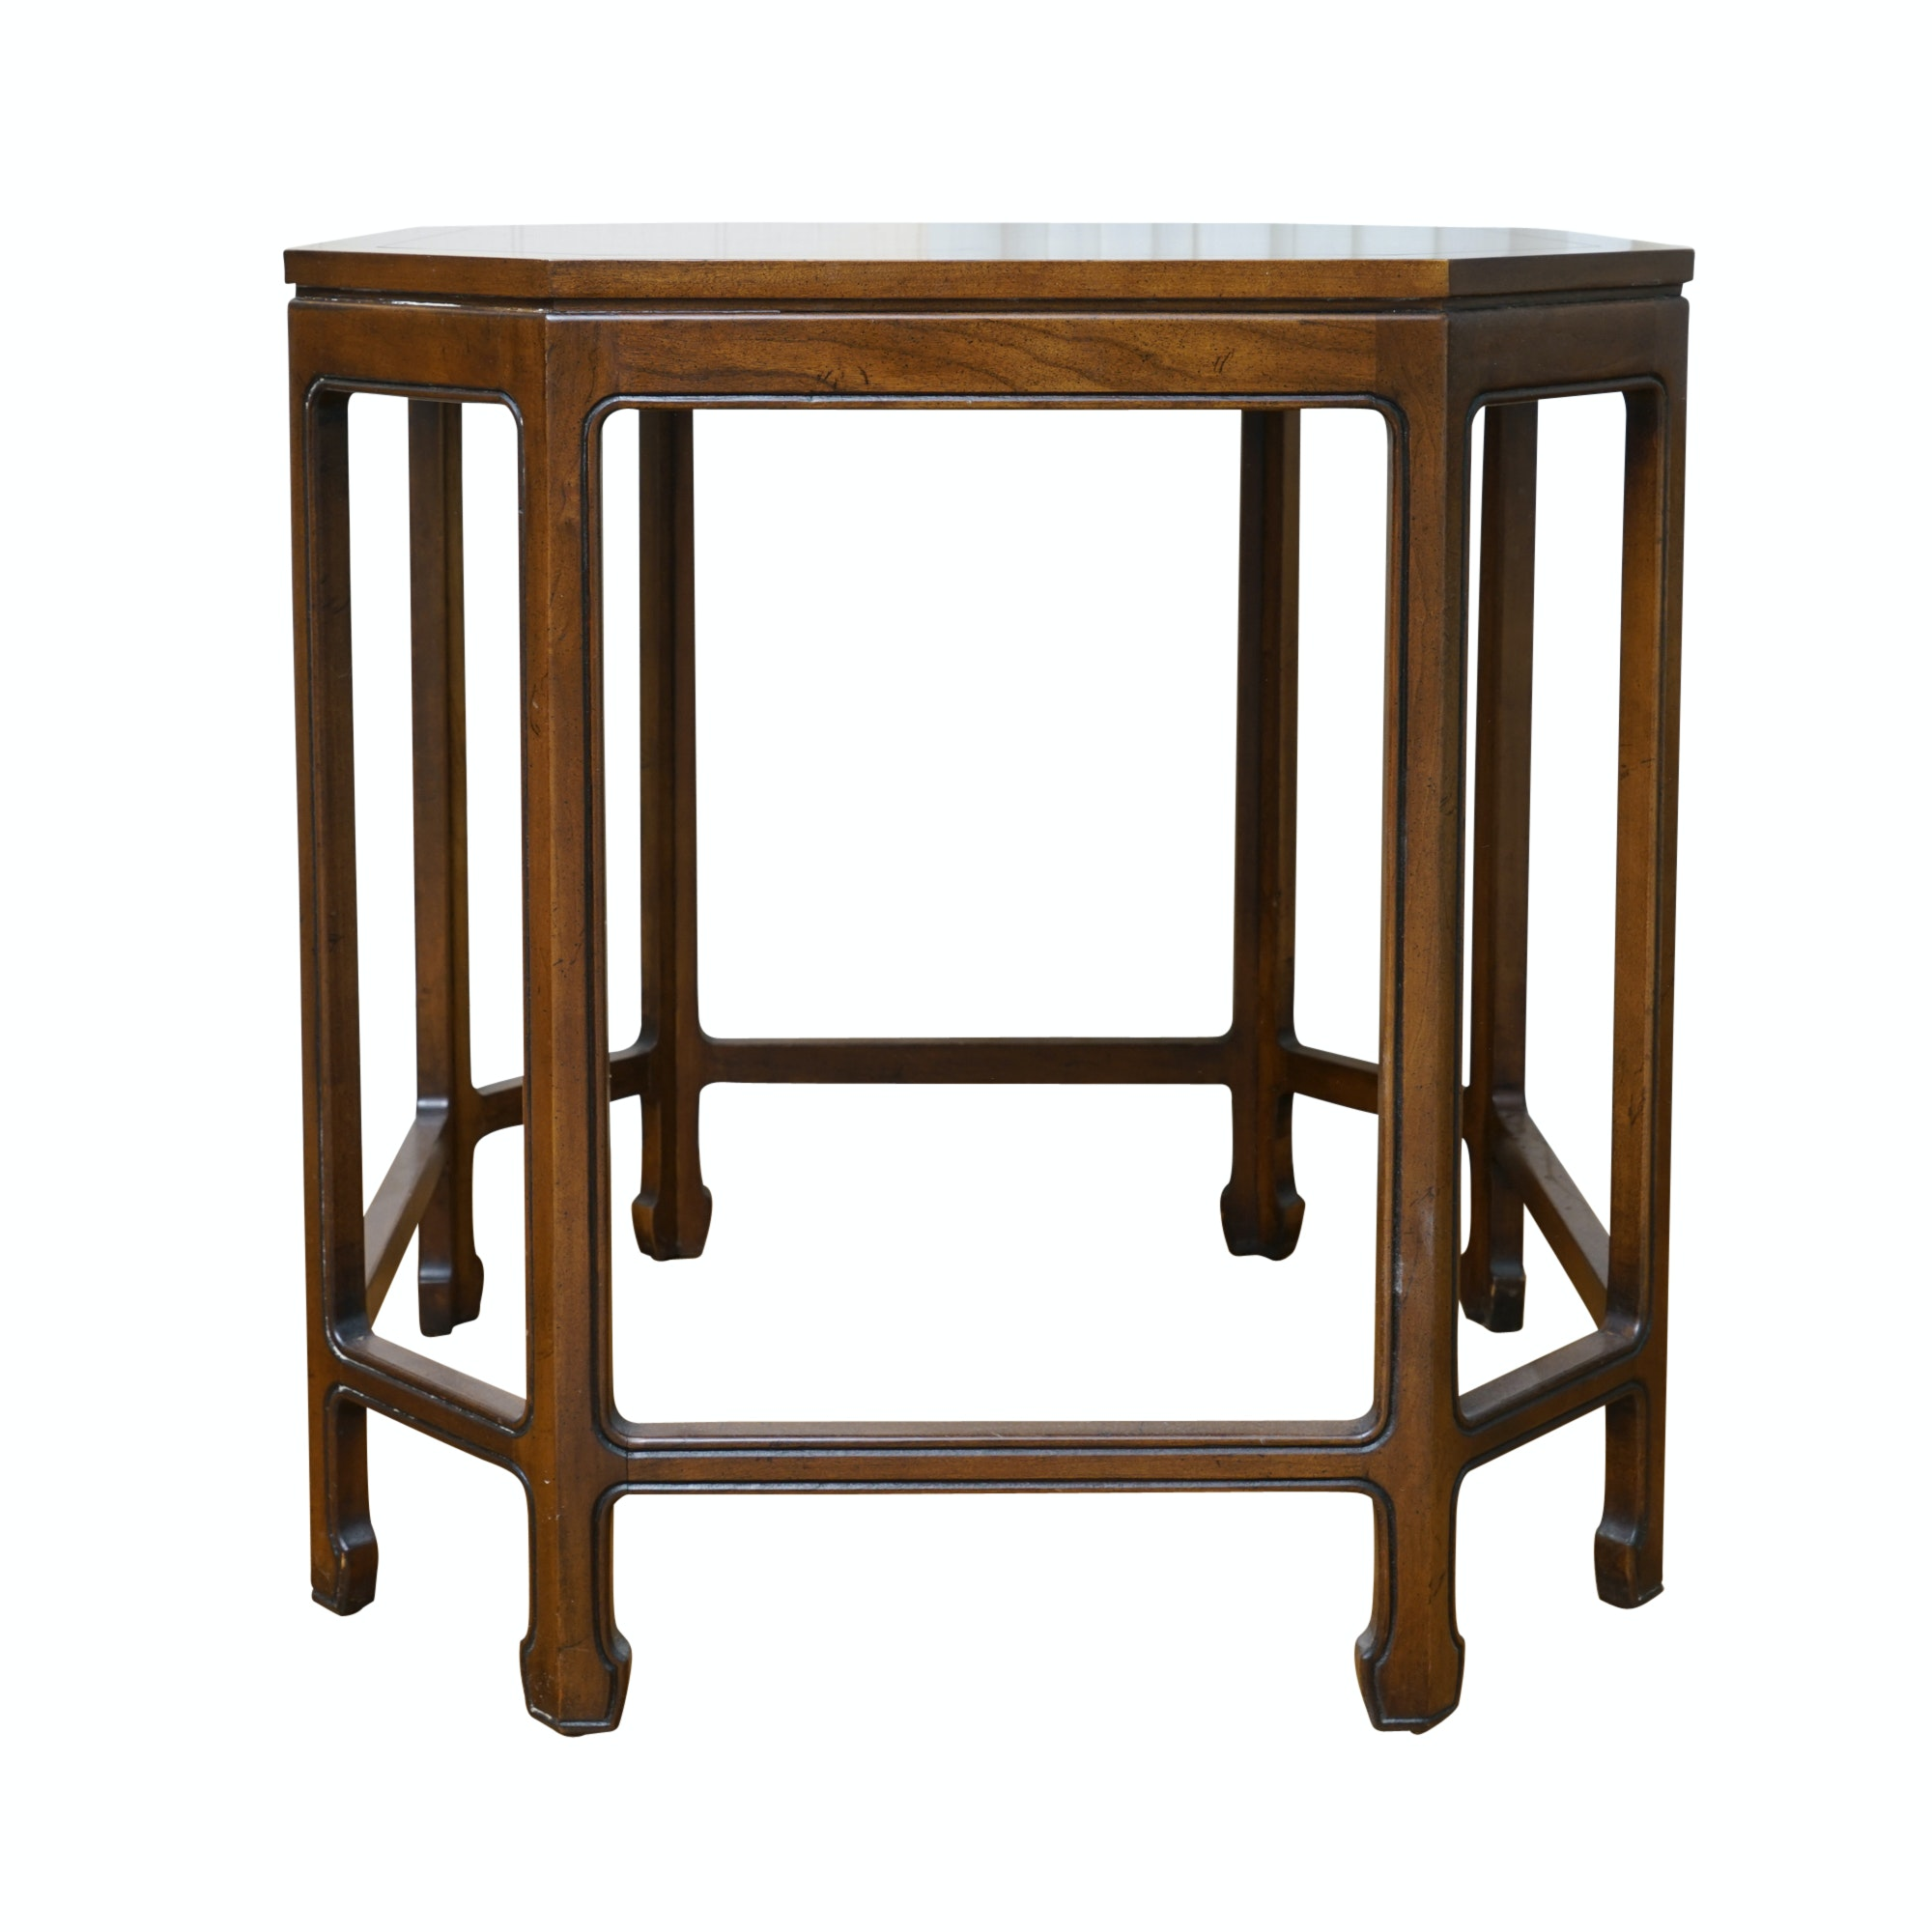 Octagonal Side Table by Kindel